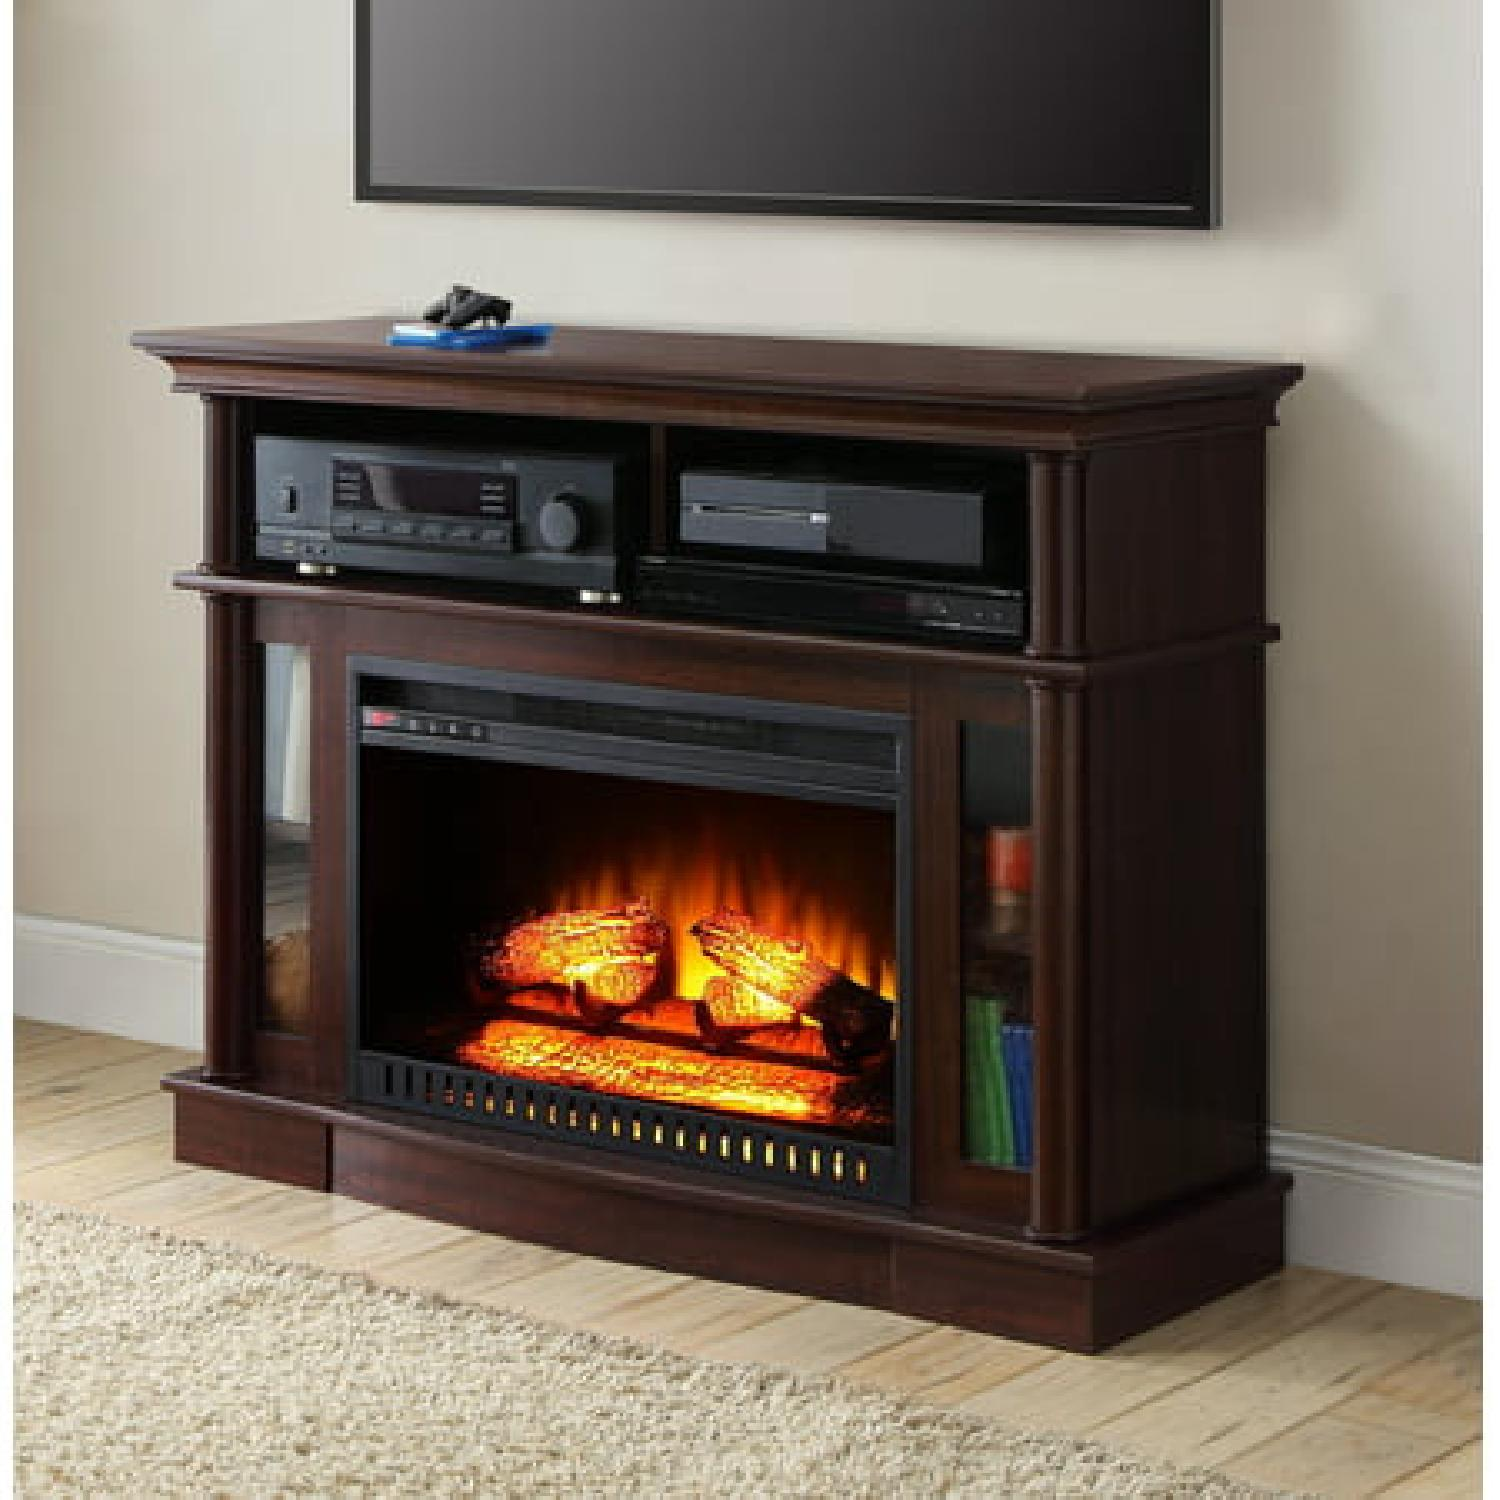 Better Homes & Gardens Media Console w/ Fireplace - image-1